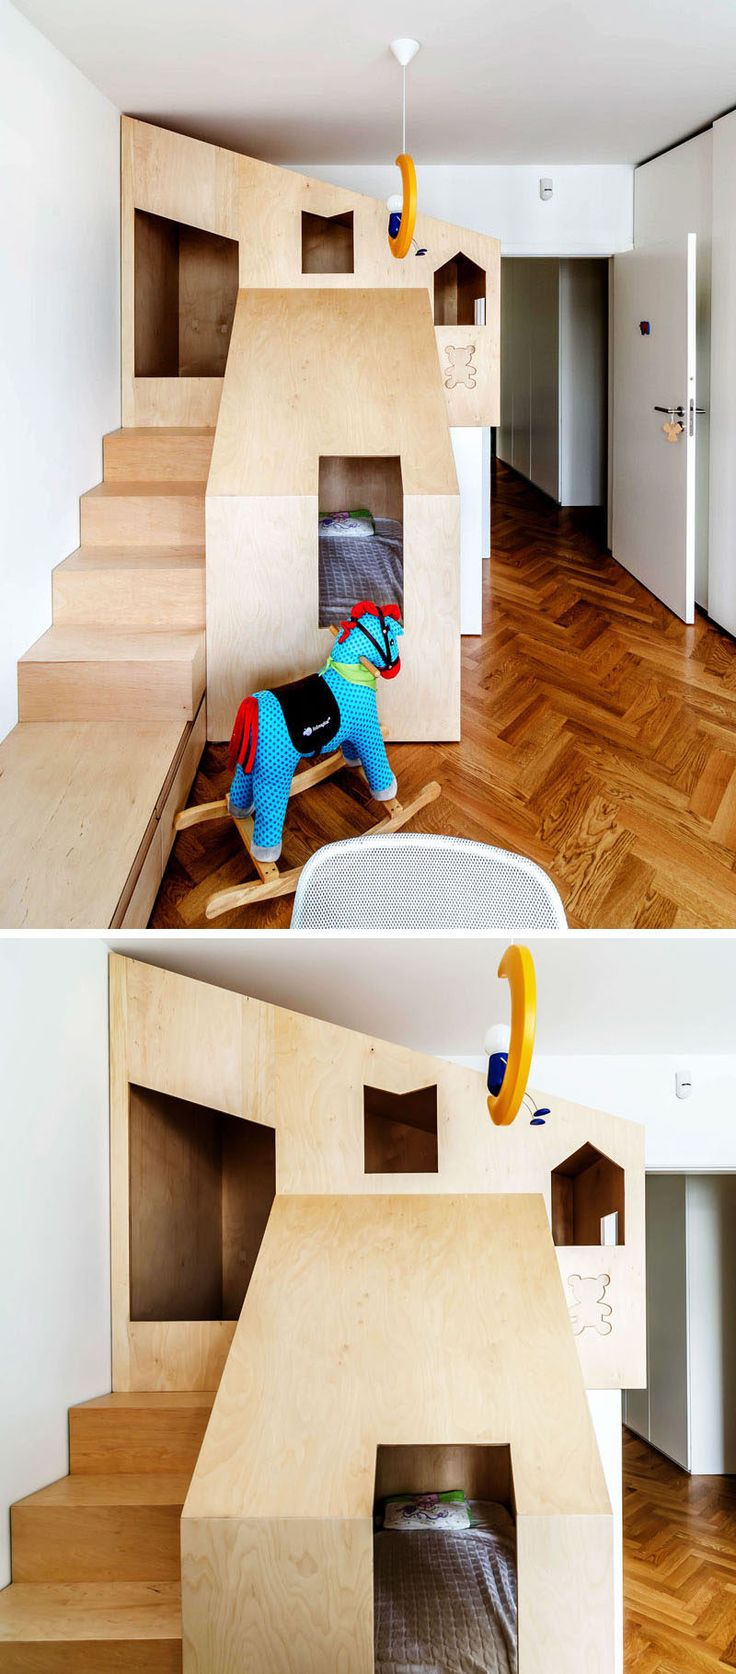 190 best bunkbeds images on pinterest | kidsroom, room and bedrooms